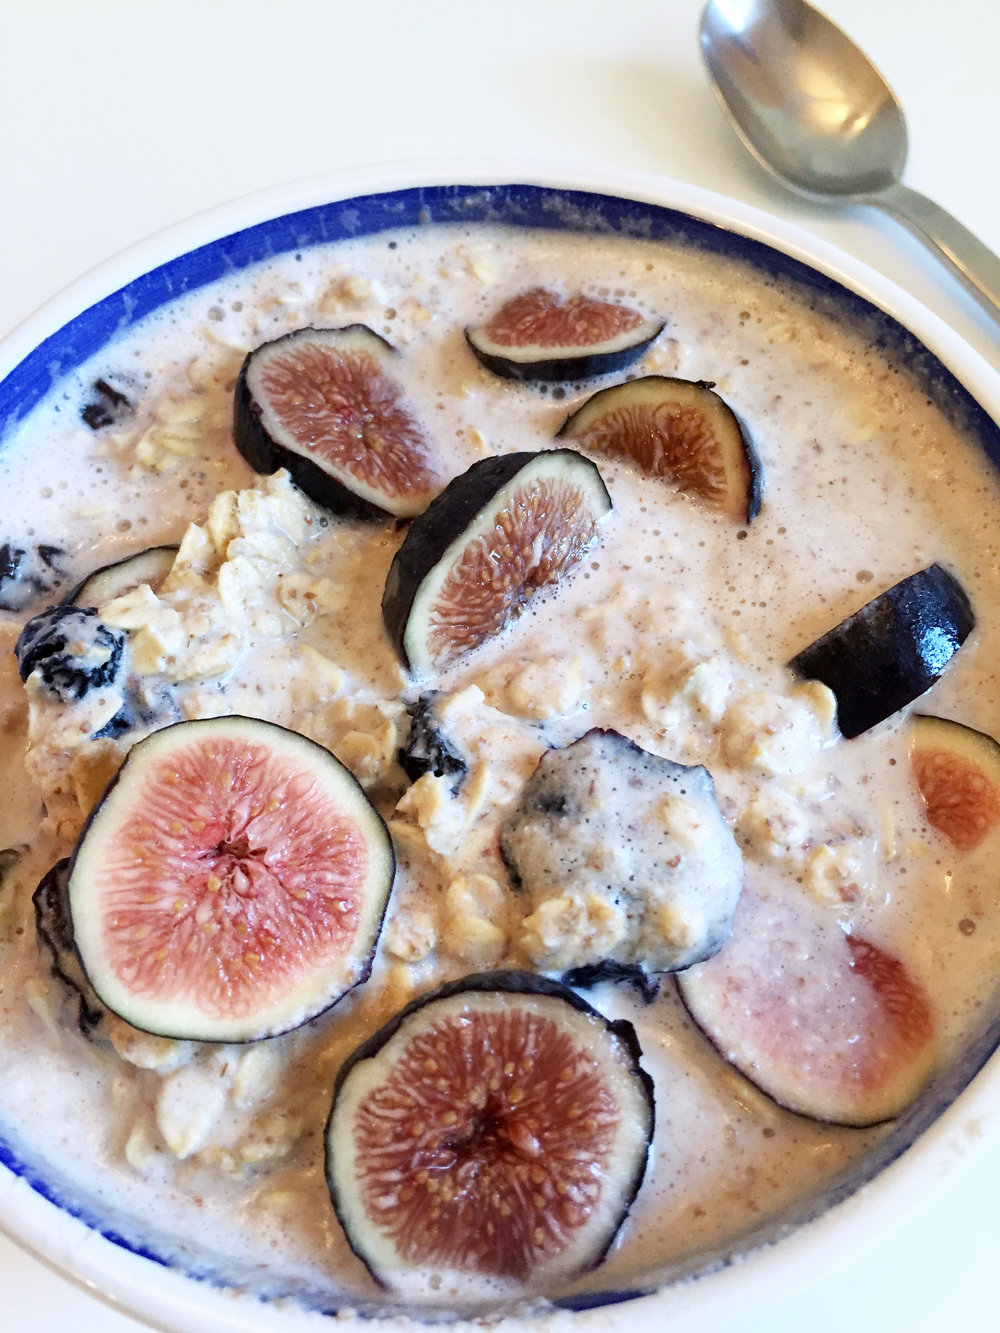 Muesli topped with fresh figs, another favorite